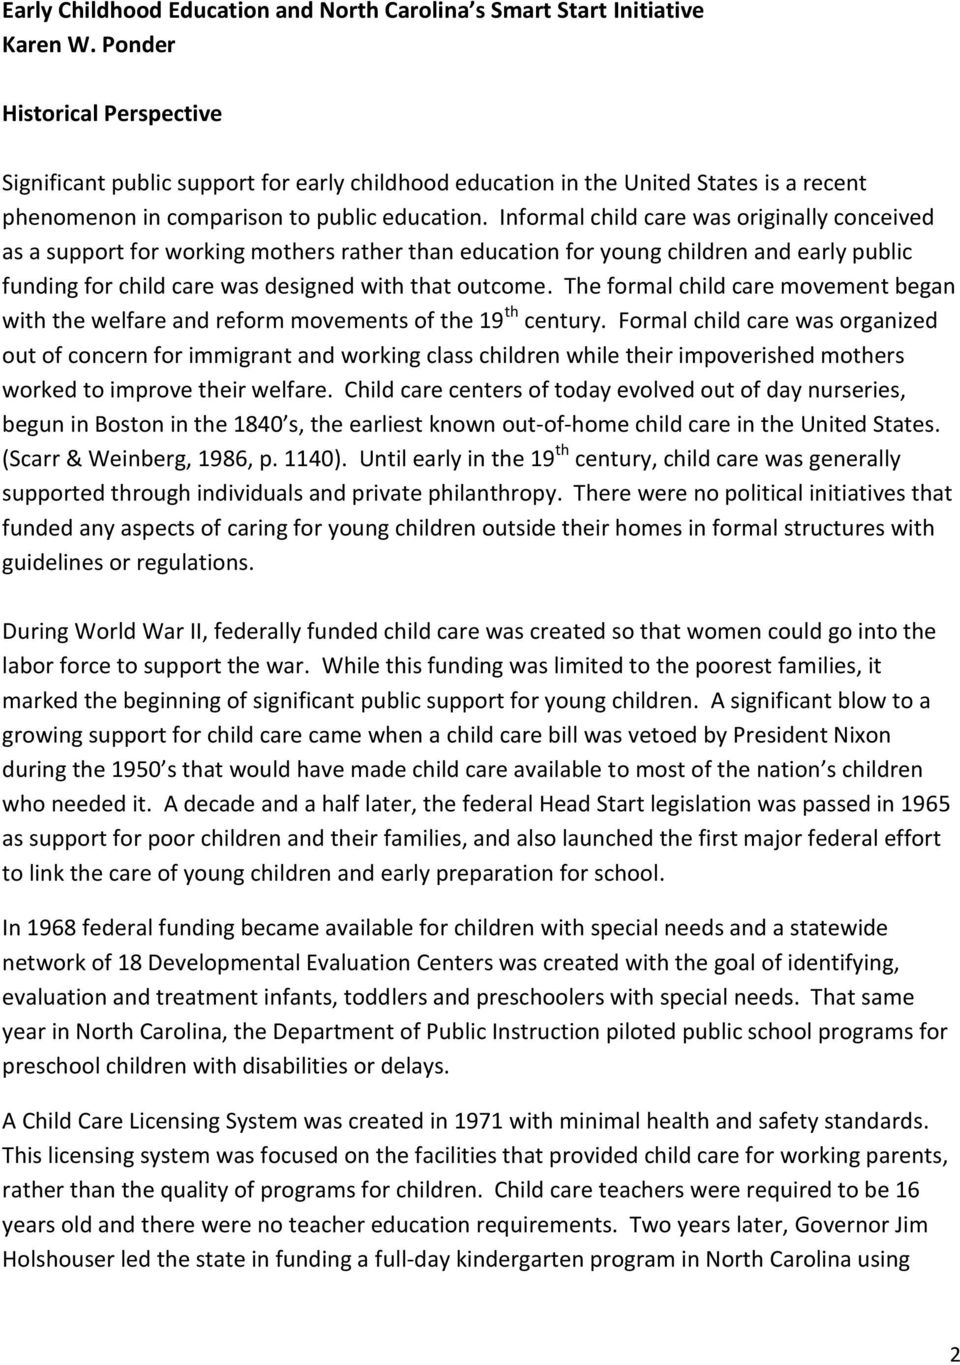 Informal child care was originally conceived as a support for working mothers rather than education for young children and early public funding for child care was designed with that outcome.